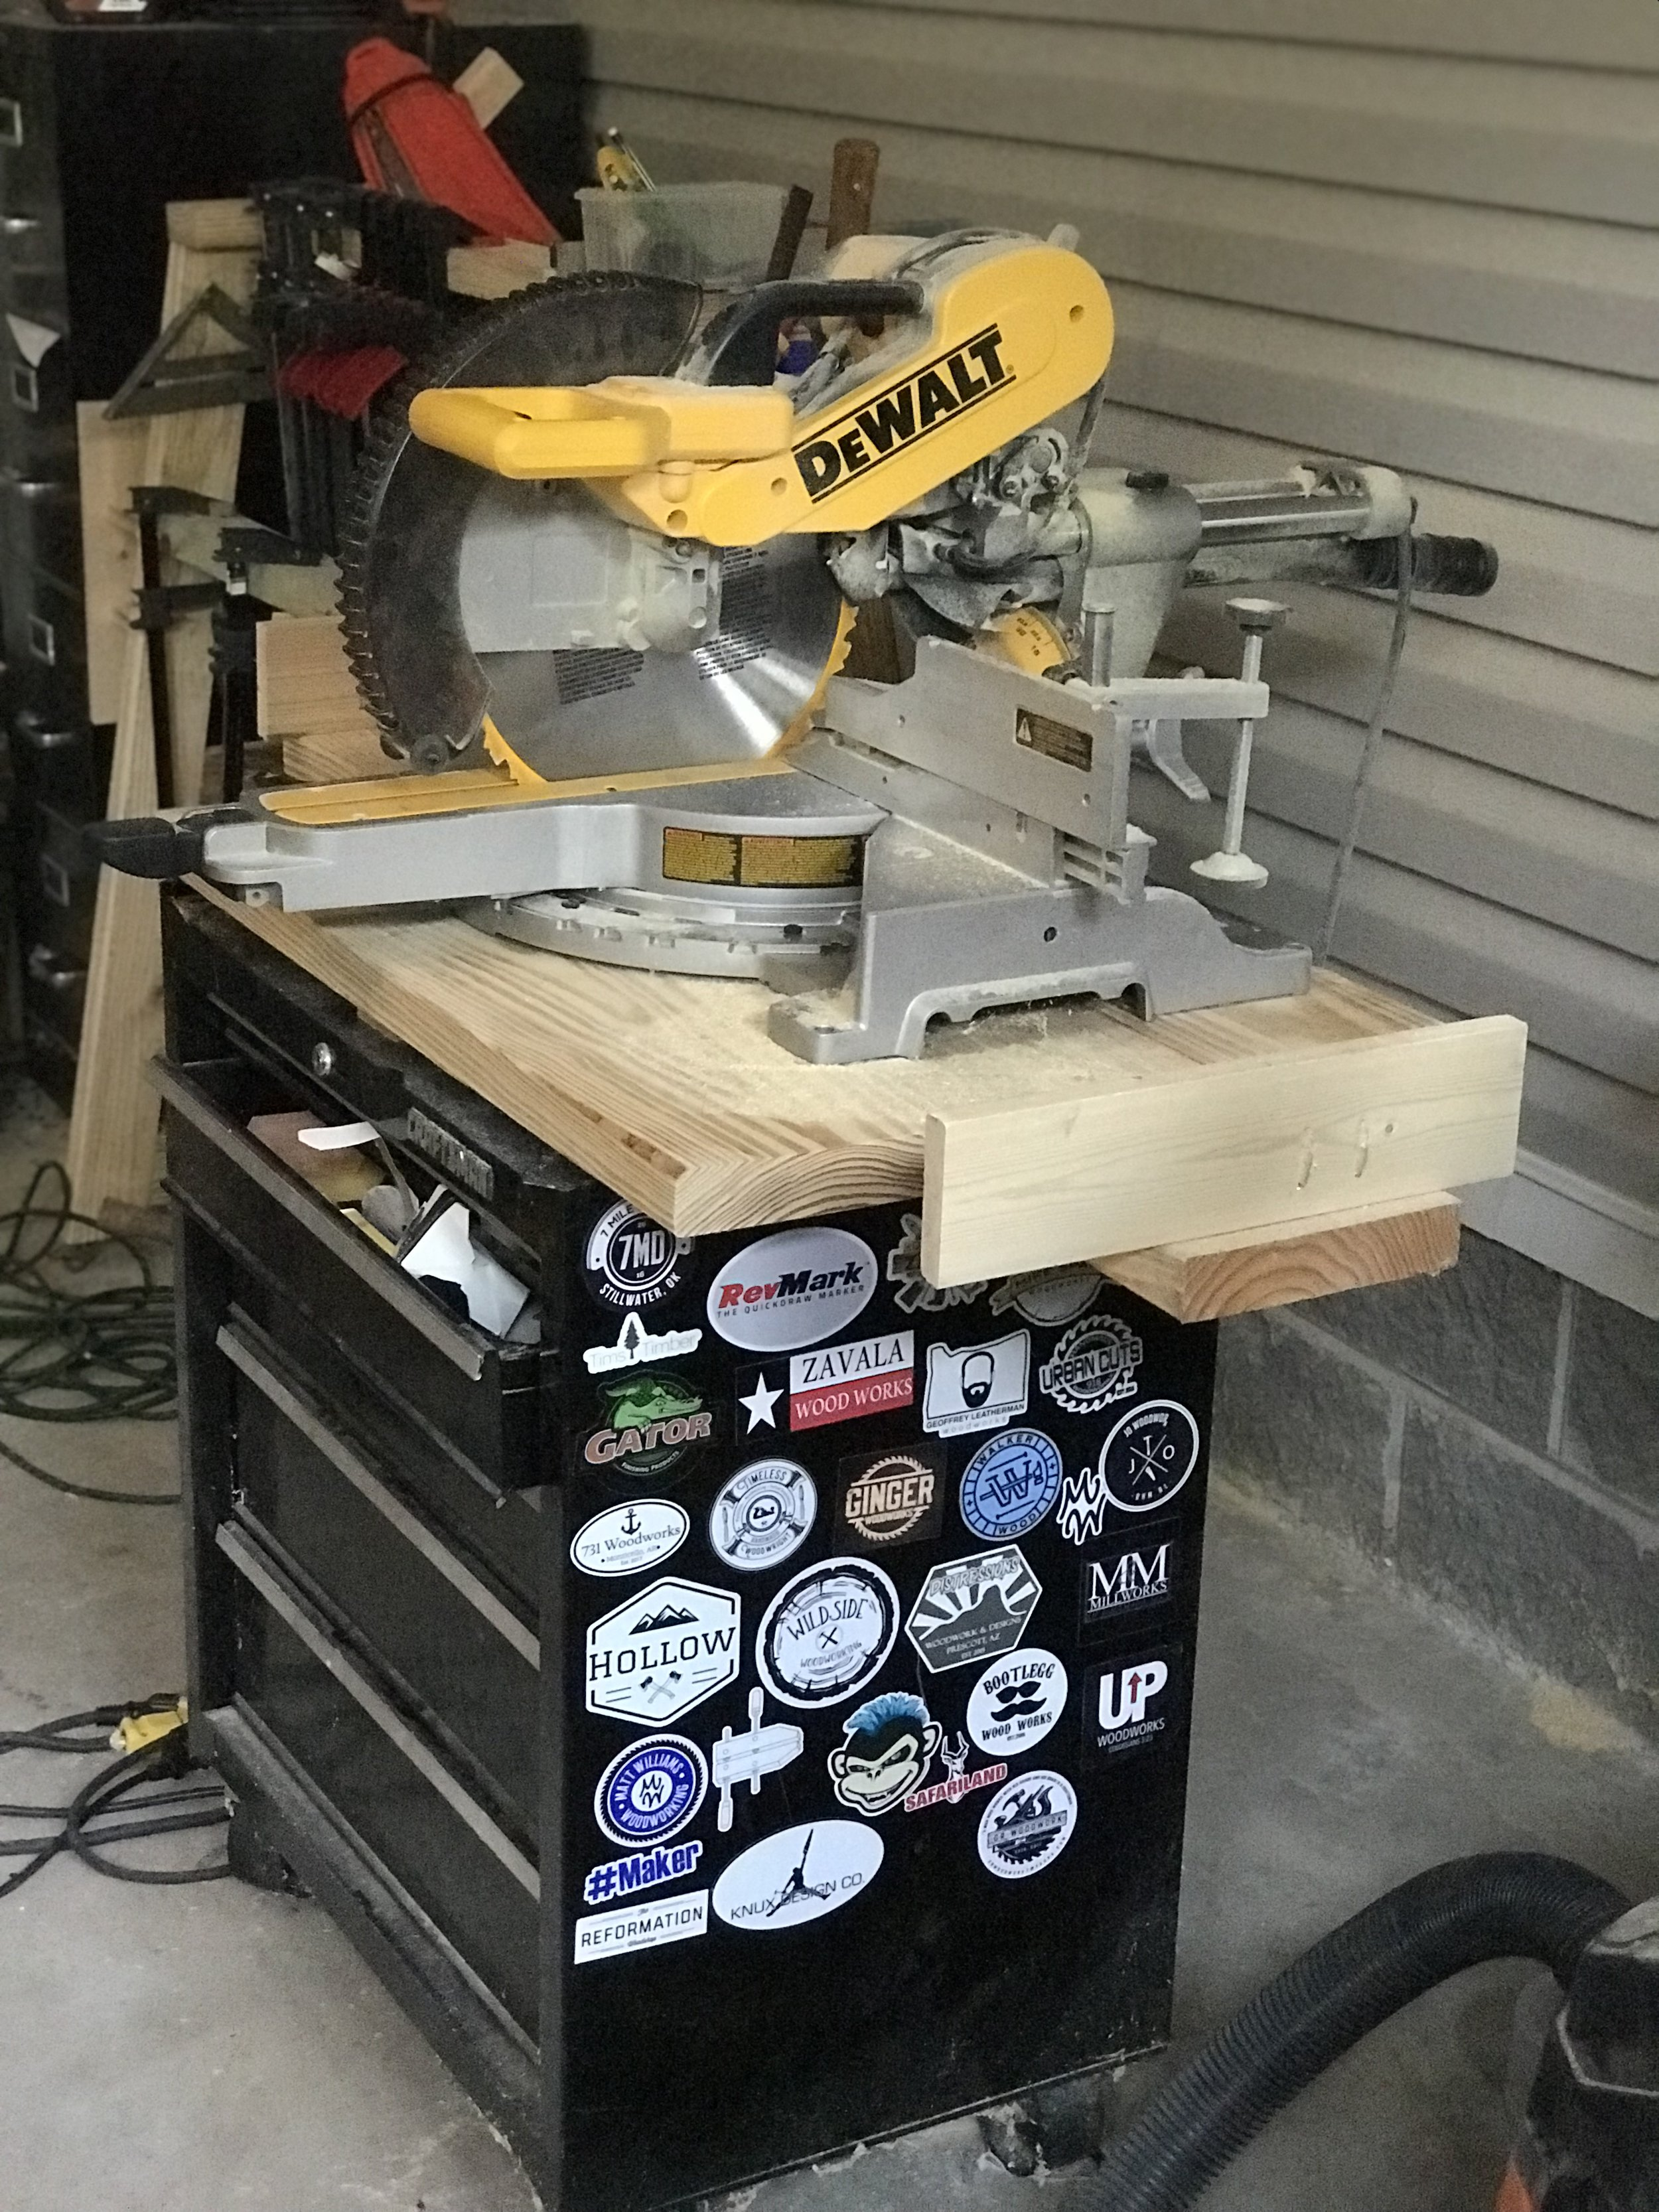 Dewalt Dws779 Miter Saw Review 731 Woodworks We Build Custom Furniture Diy Guides Monticello Ar